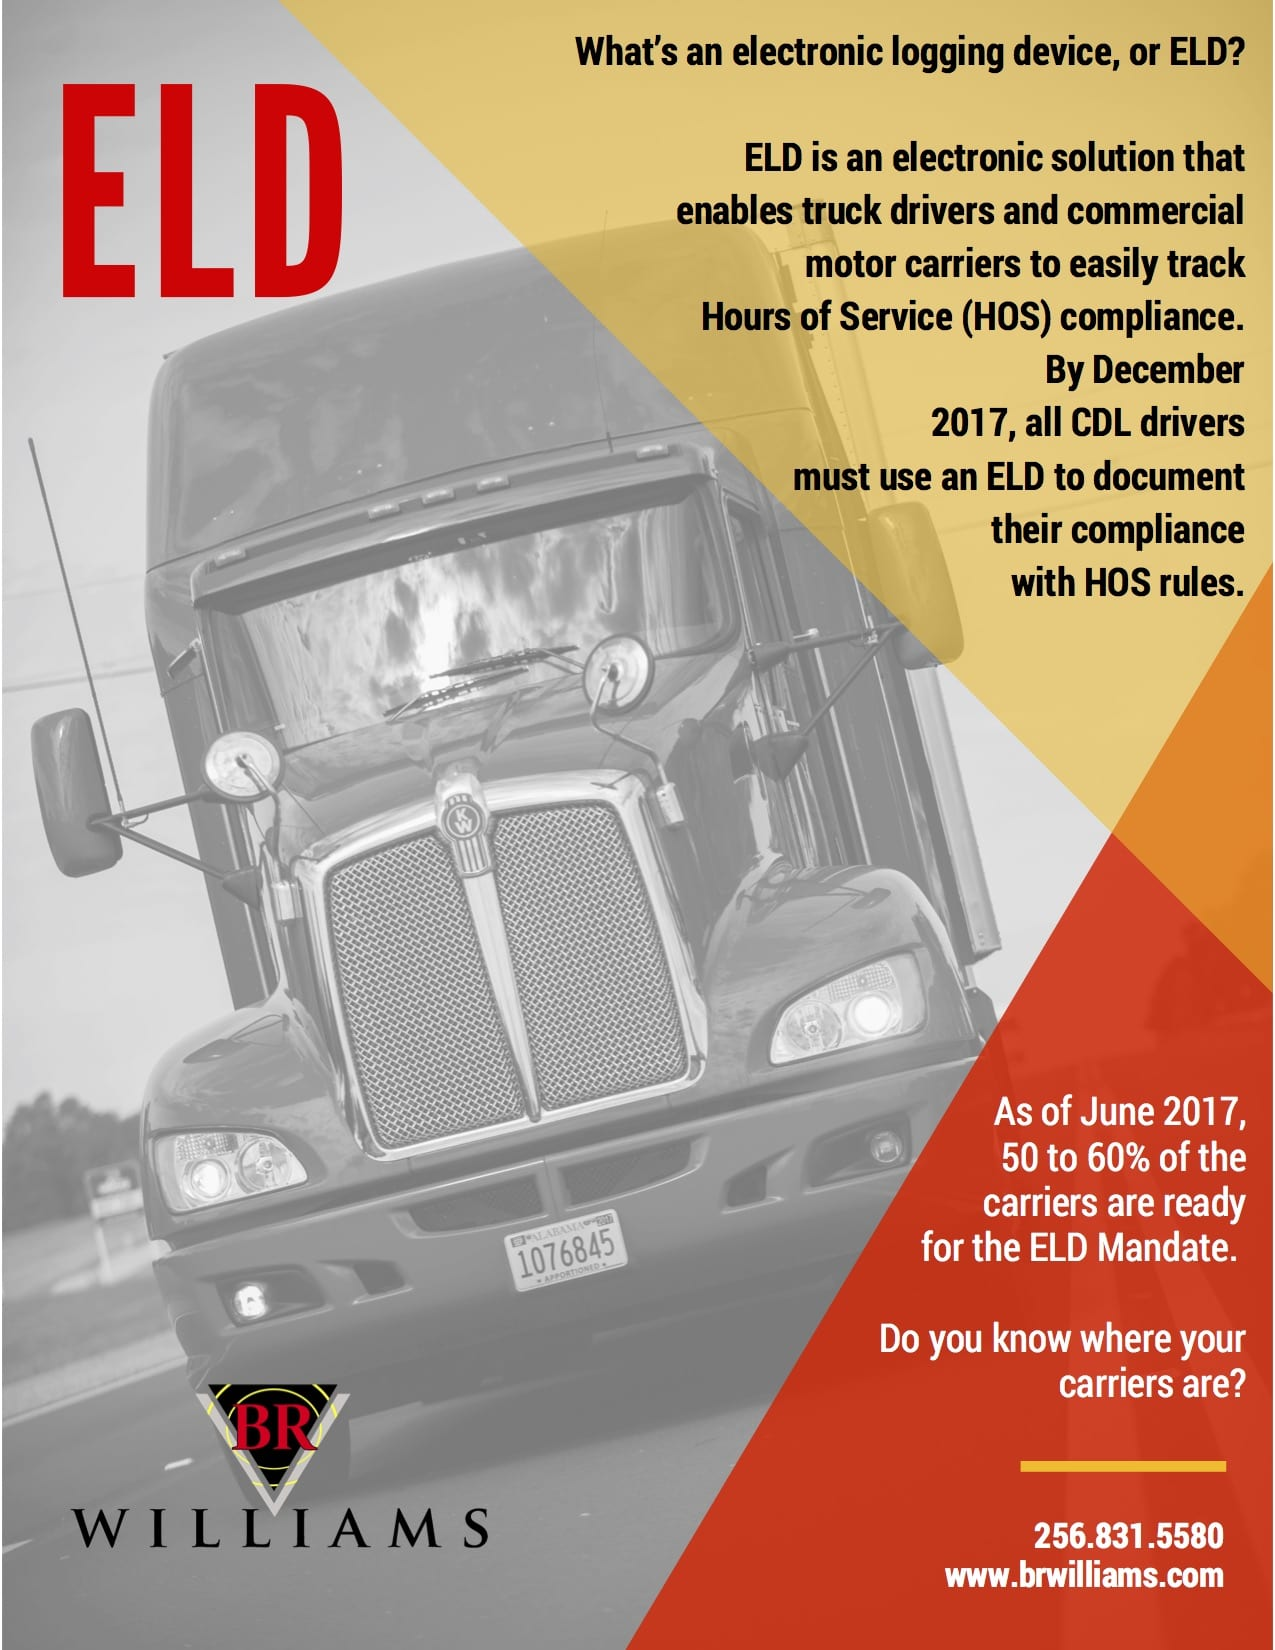 Factual summary of Electronic logging device (ELD)